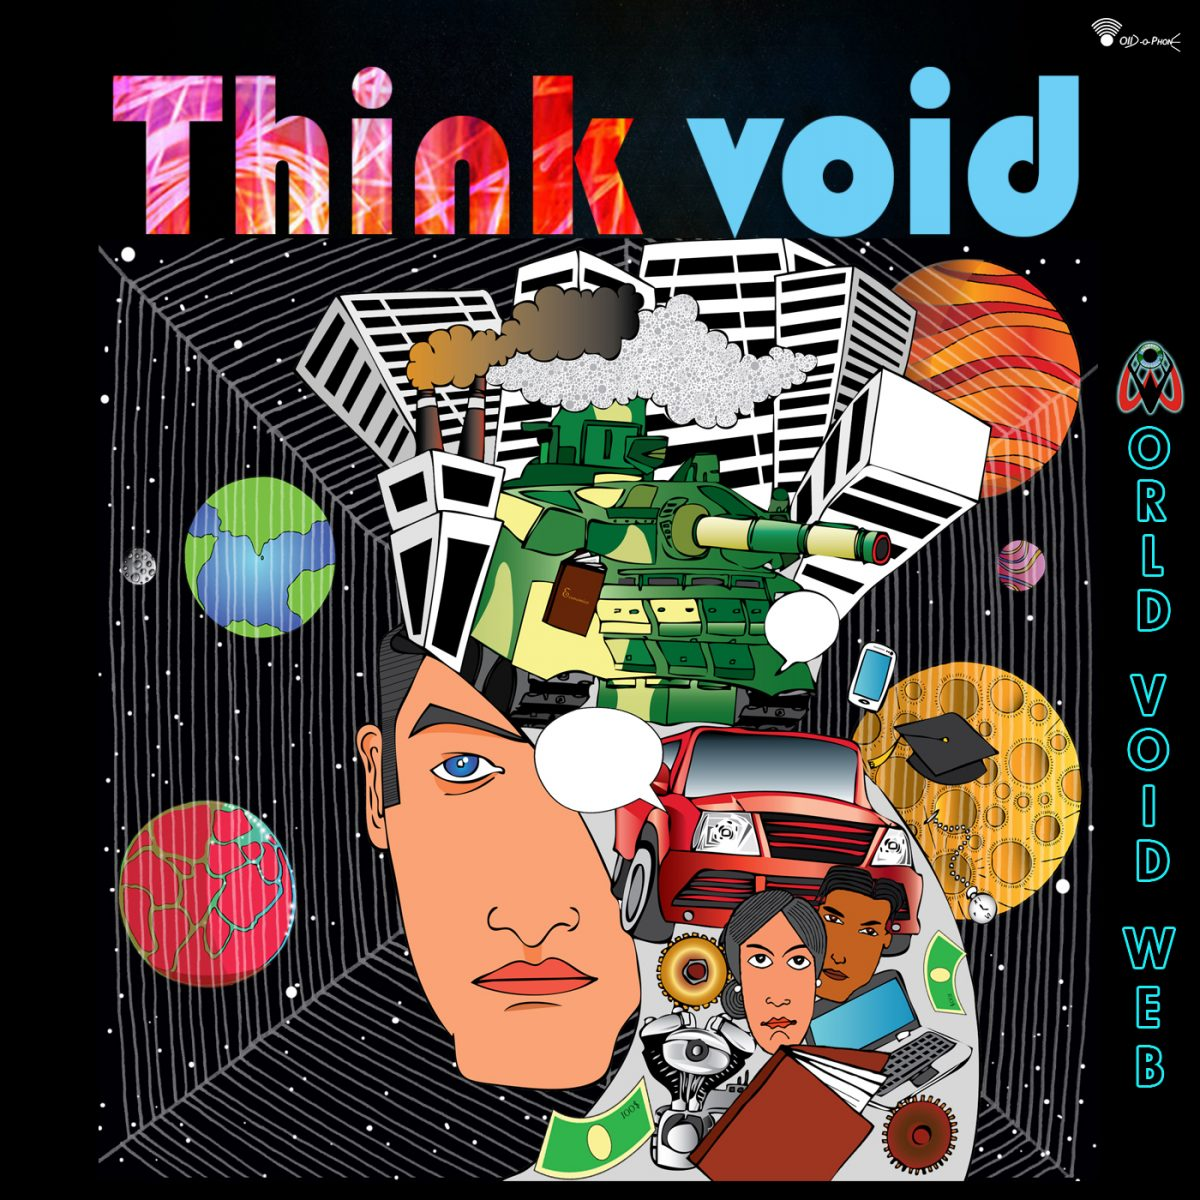 World Void Web Set to Release Think Void 9/9